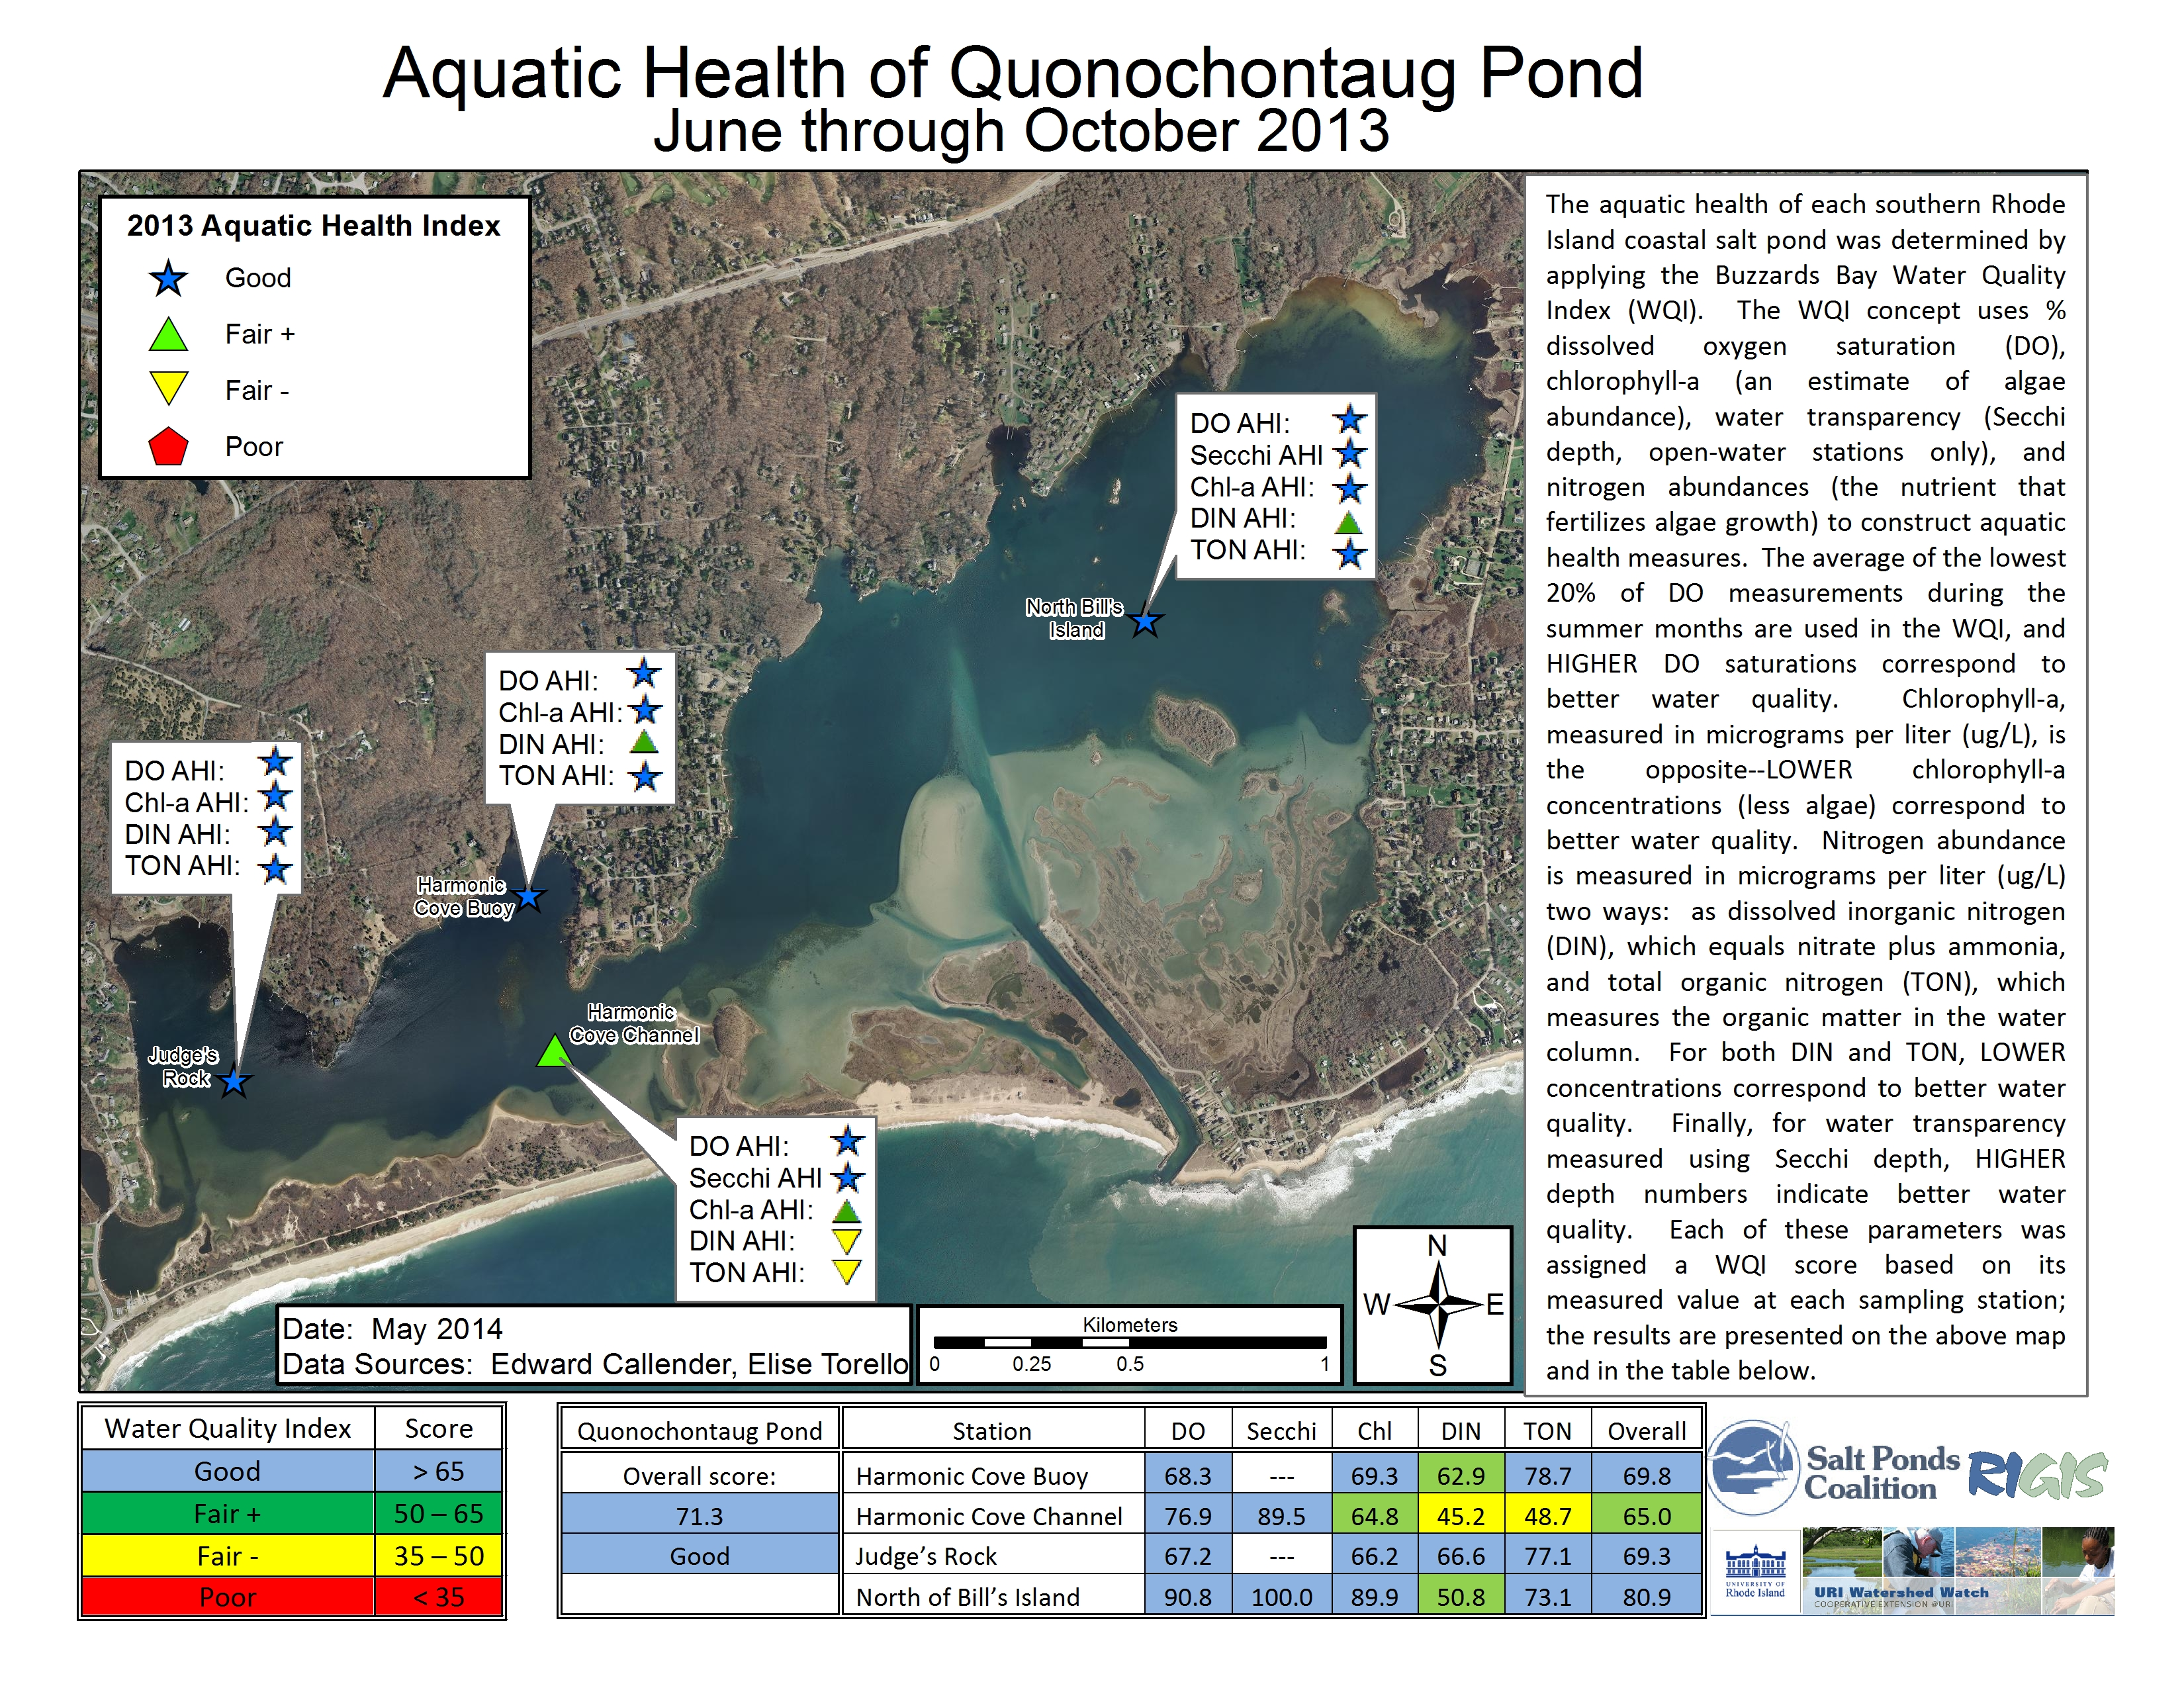 Quonochontaug pond 2013 quonochontaug pond ahi map geenschuldenfo Image collections